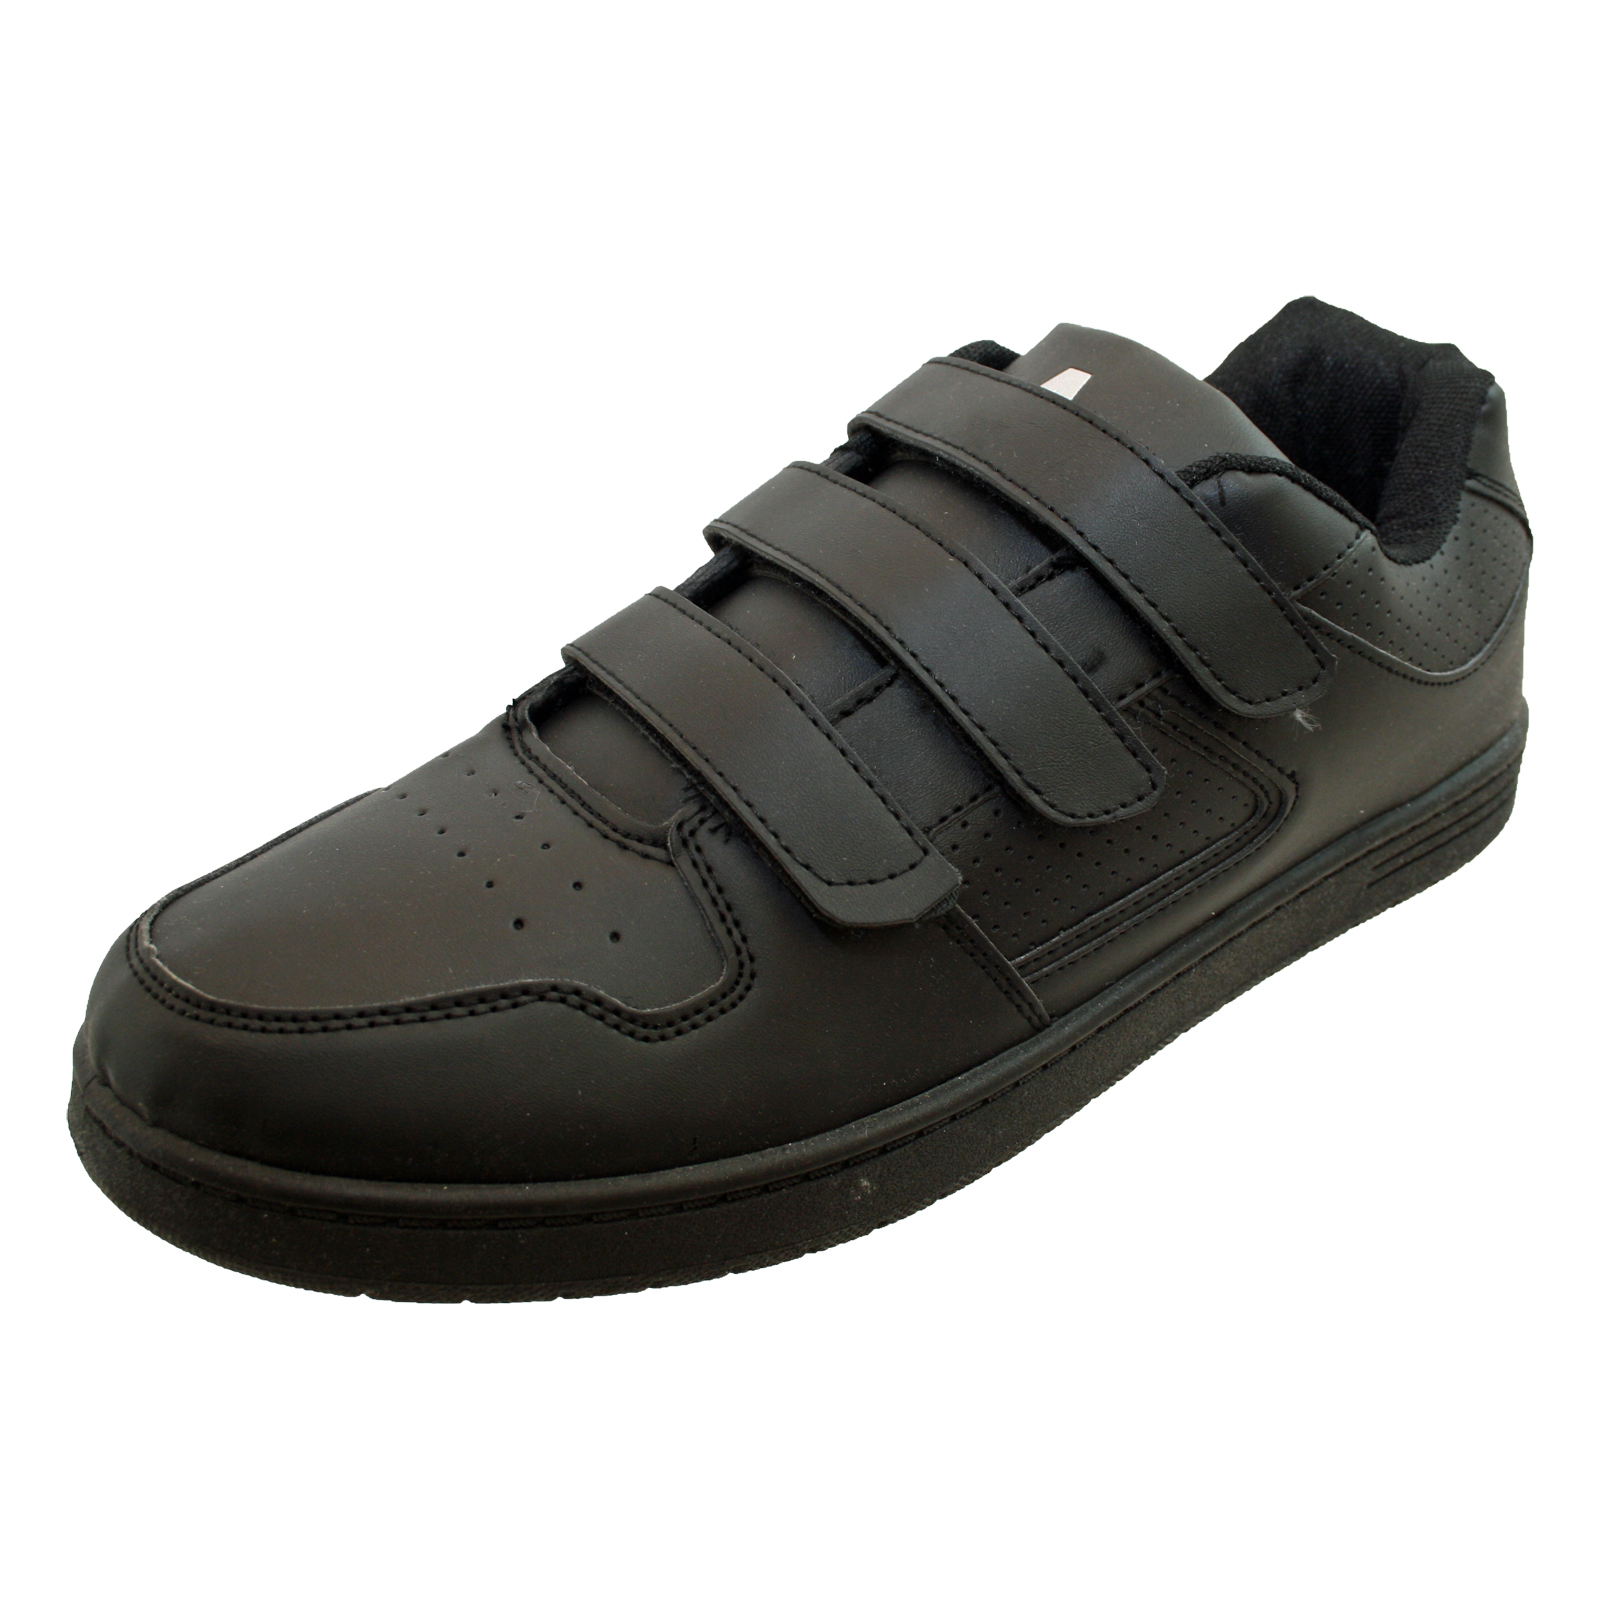 Men's Velcro Shoes Whether you have mobility issues or suffer from arthritis, getting your shoes on and off can be the hardest part of your day. Shoes with velcro straps and fasteners can make that easier.